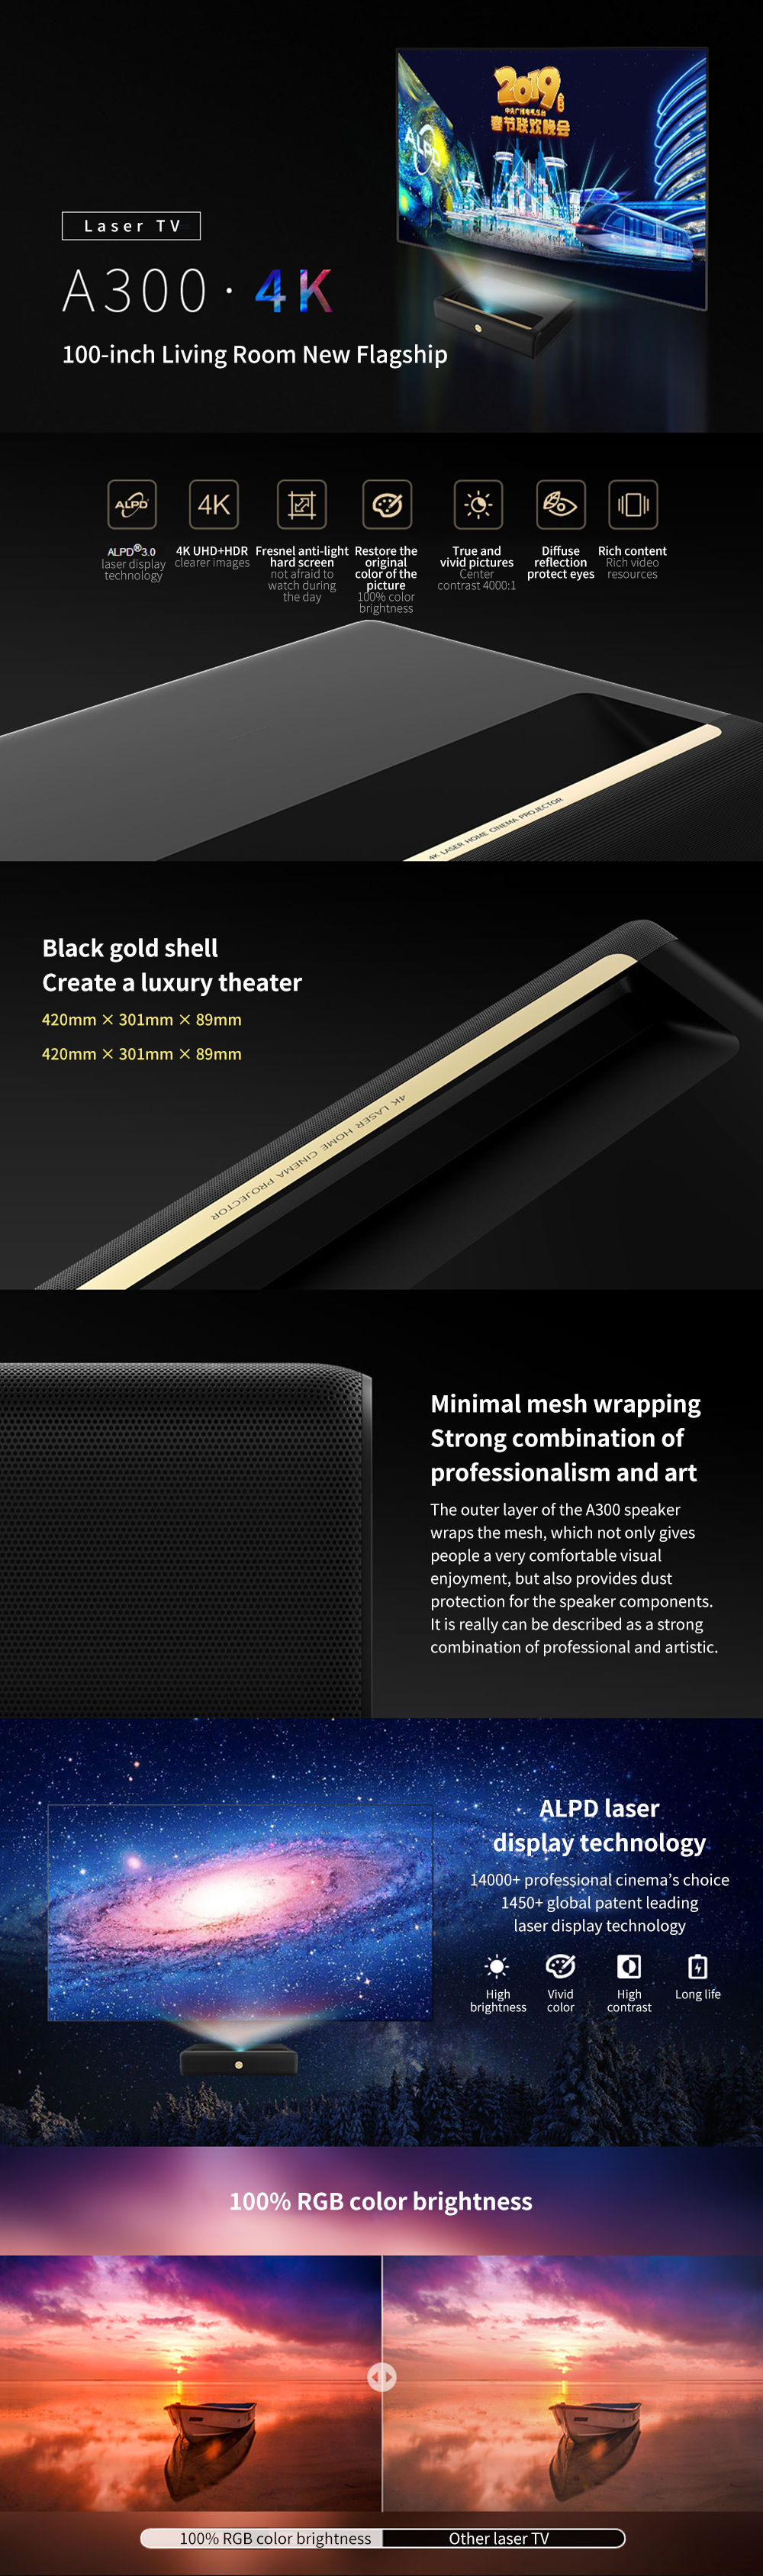 Xiaomi Ecosystem WEMAX A300 4K ALPD Ultra Short Throw Laser Projector  250nit 4000:1 Contrast Ratio Support HDR Voice Control Cinema Theater  Projector